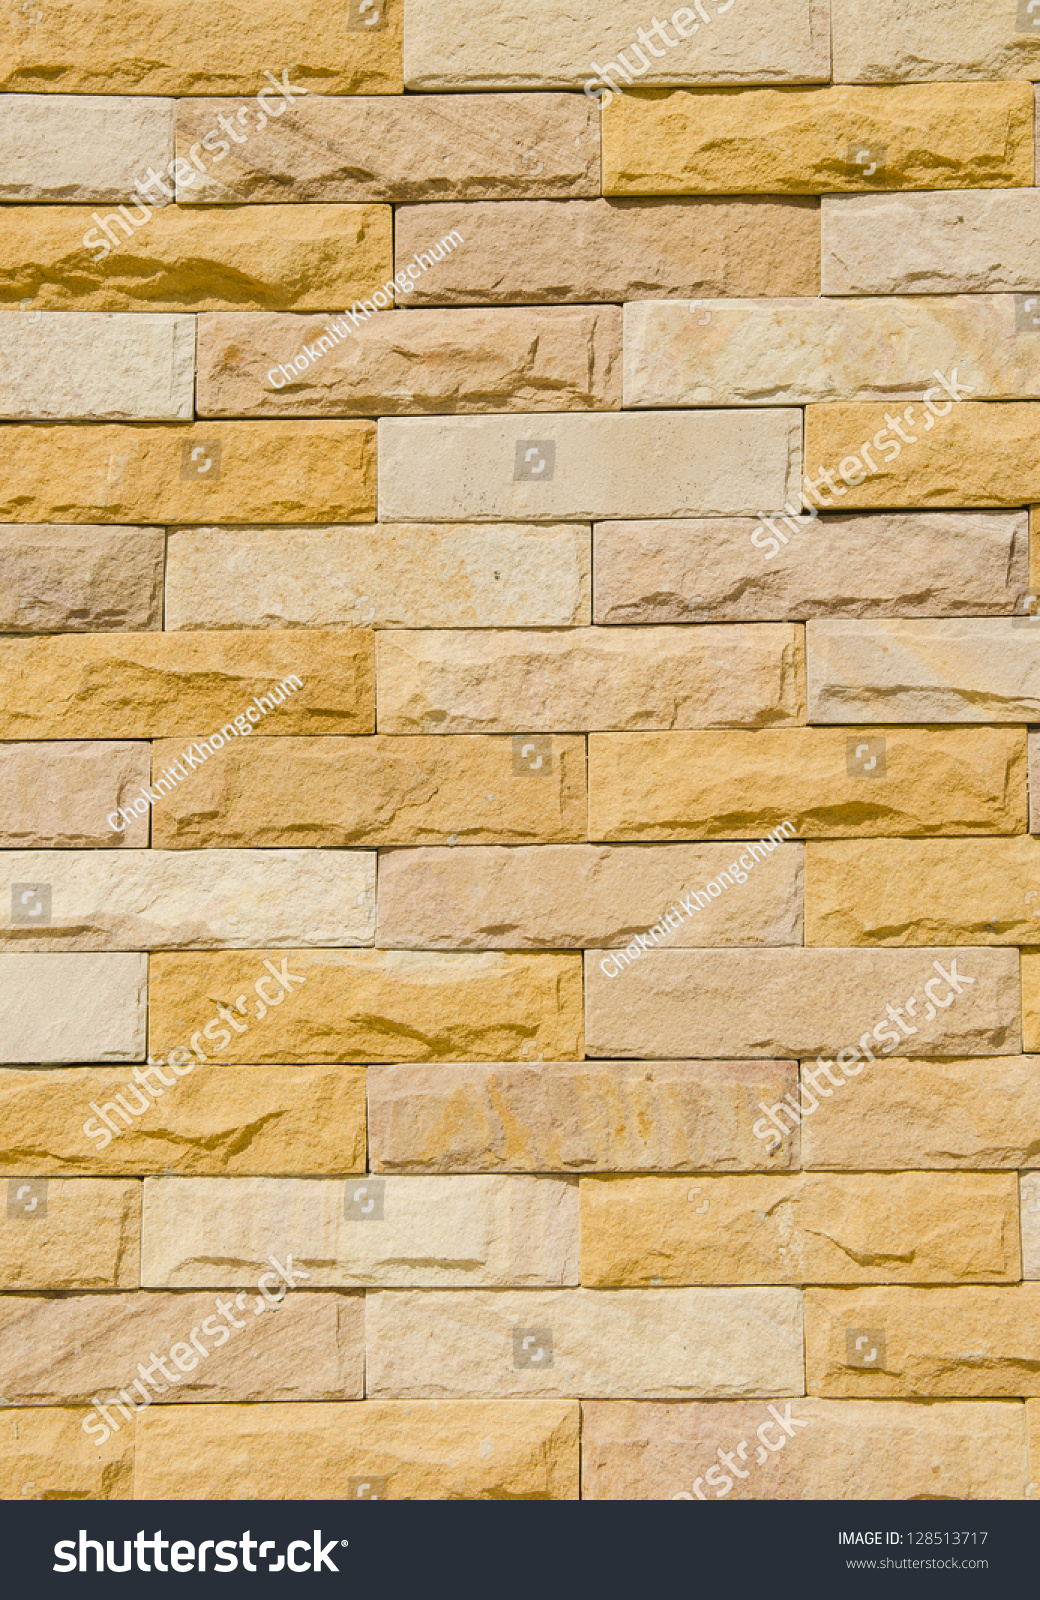 Background of old vintage brick wall | EZ Canvas